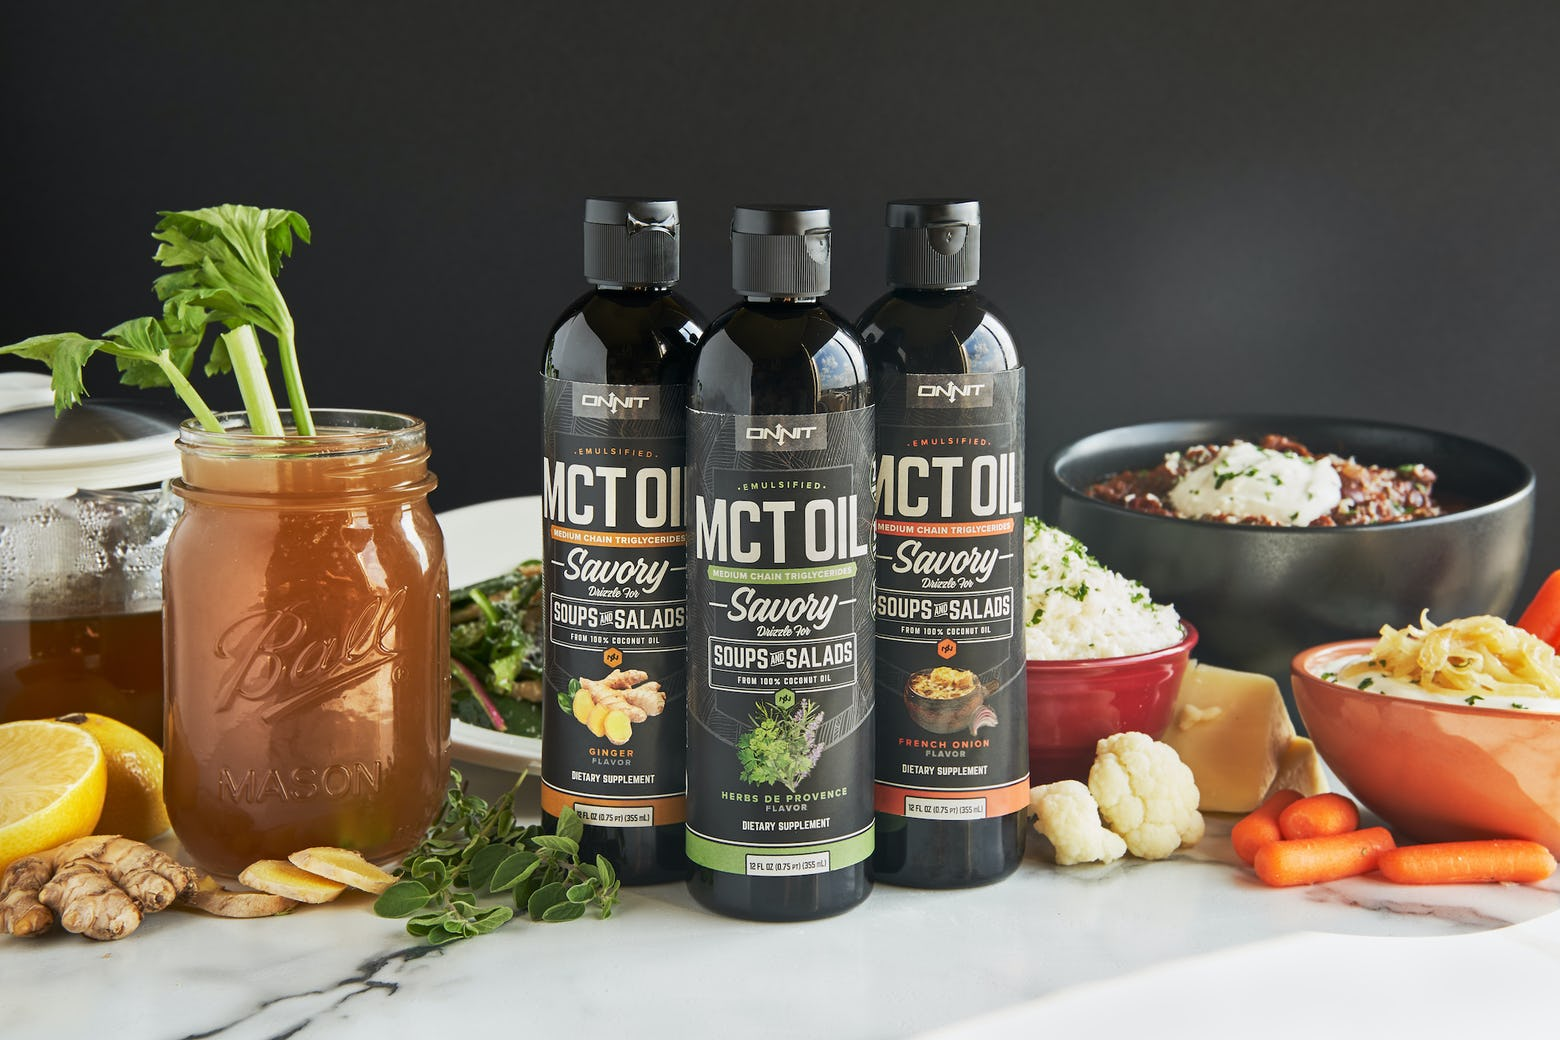 MCT Oil isn't just for Coffee Any More! Savory Emulsified MCT Oil Recipes